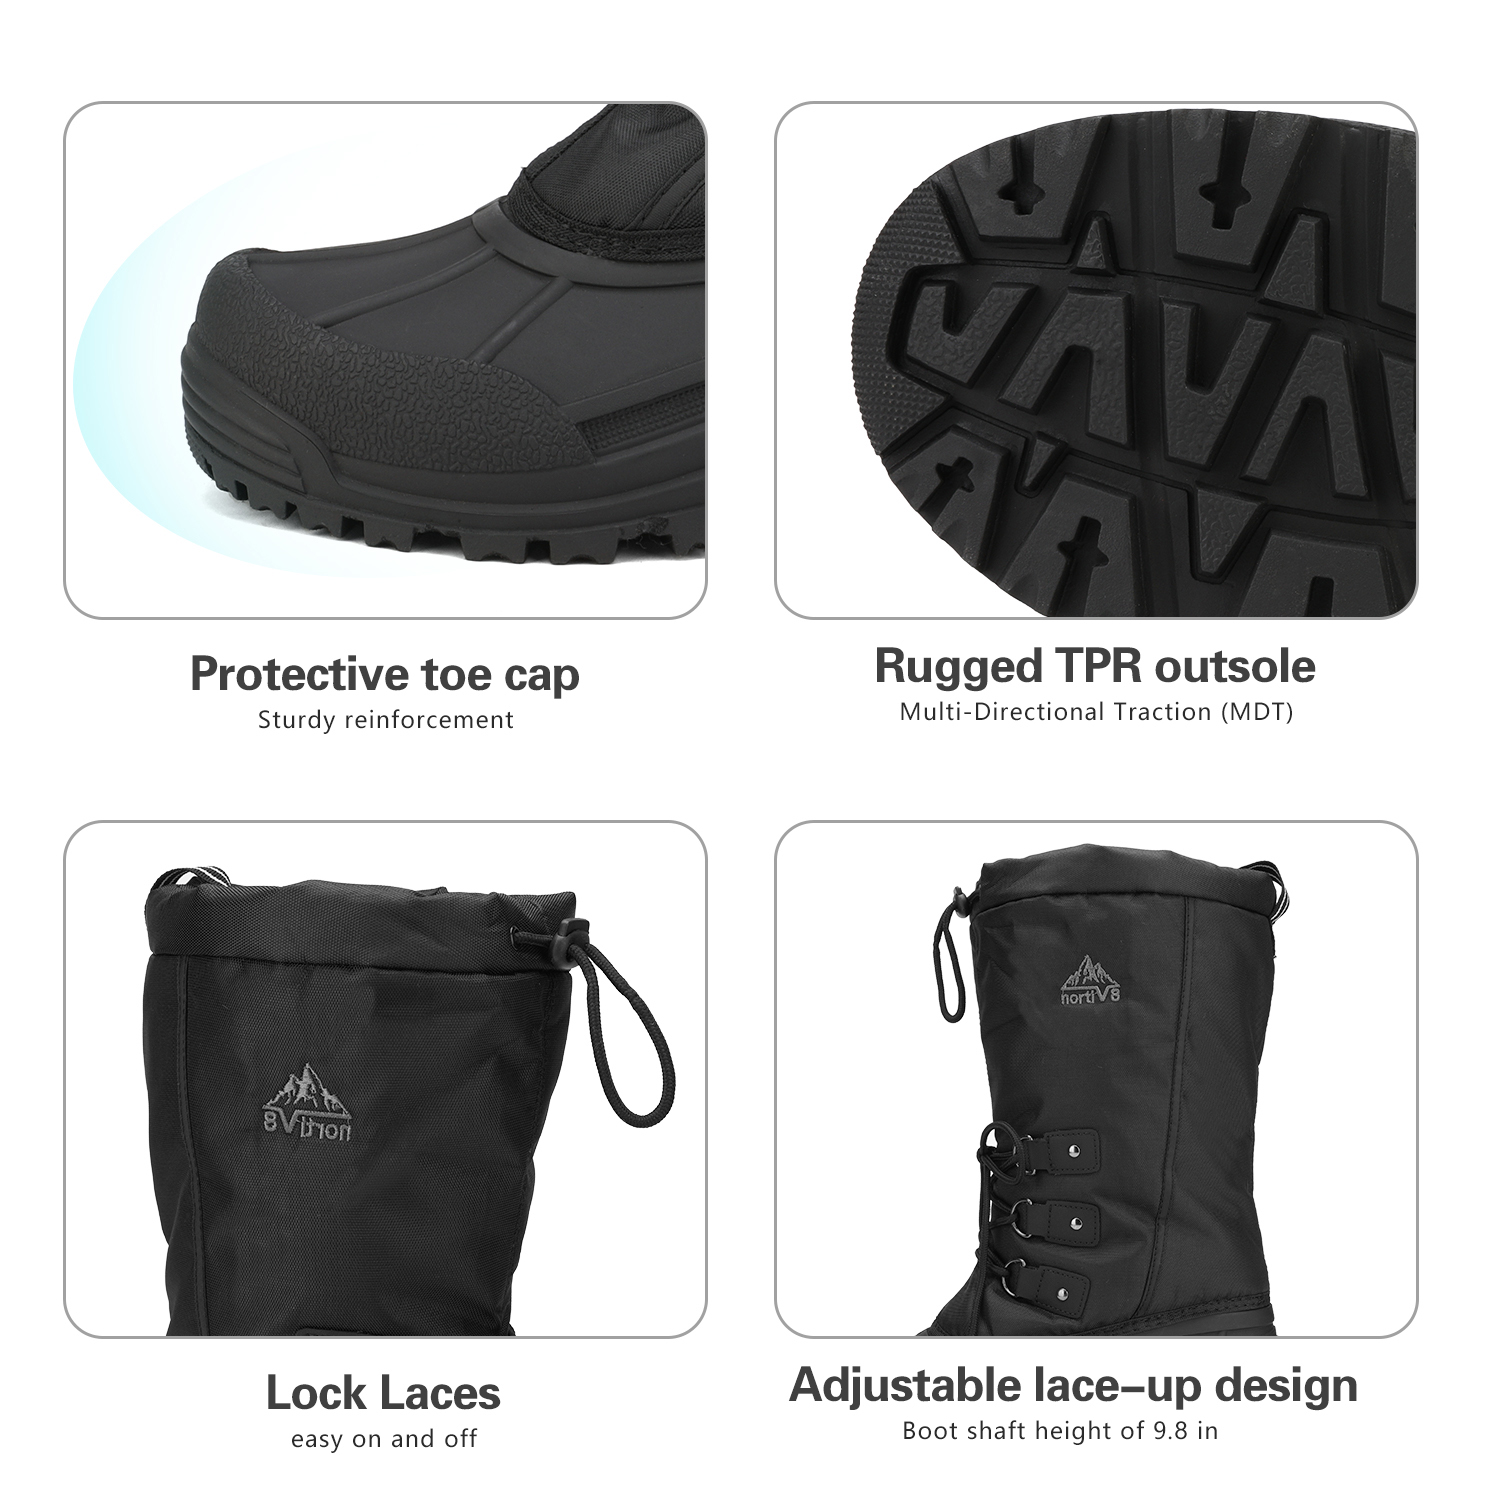 NORTIV-8-Men-039-s-Winter-Snow-Boots-Waterproof-Warm-Thermolite-Outdoor-Hiking-Boots thumbnail 18